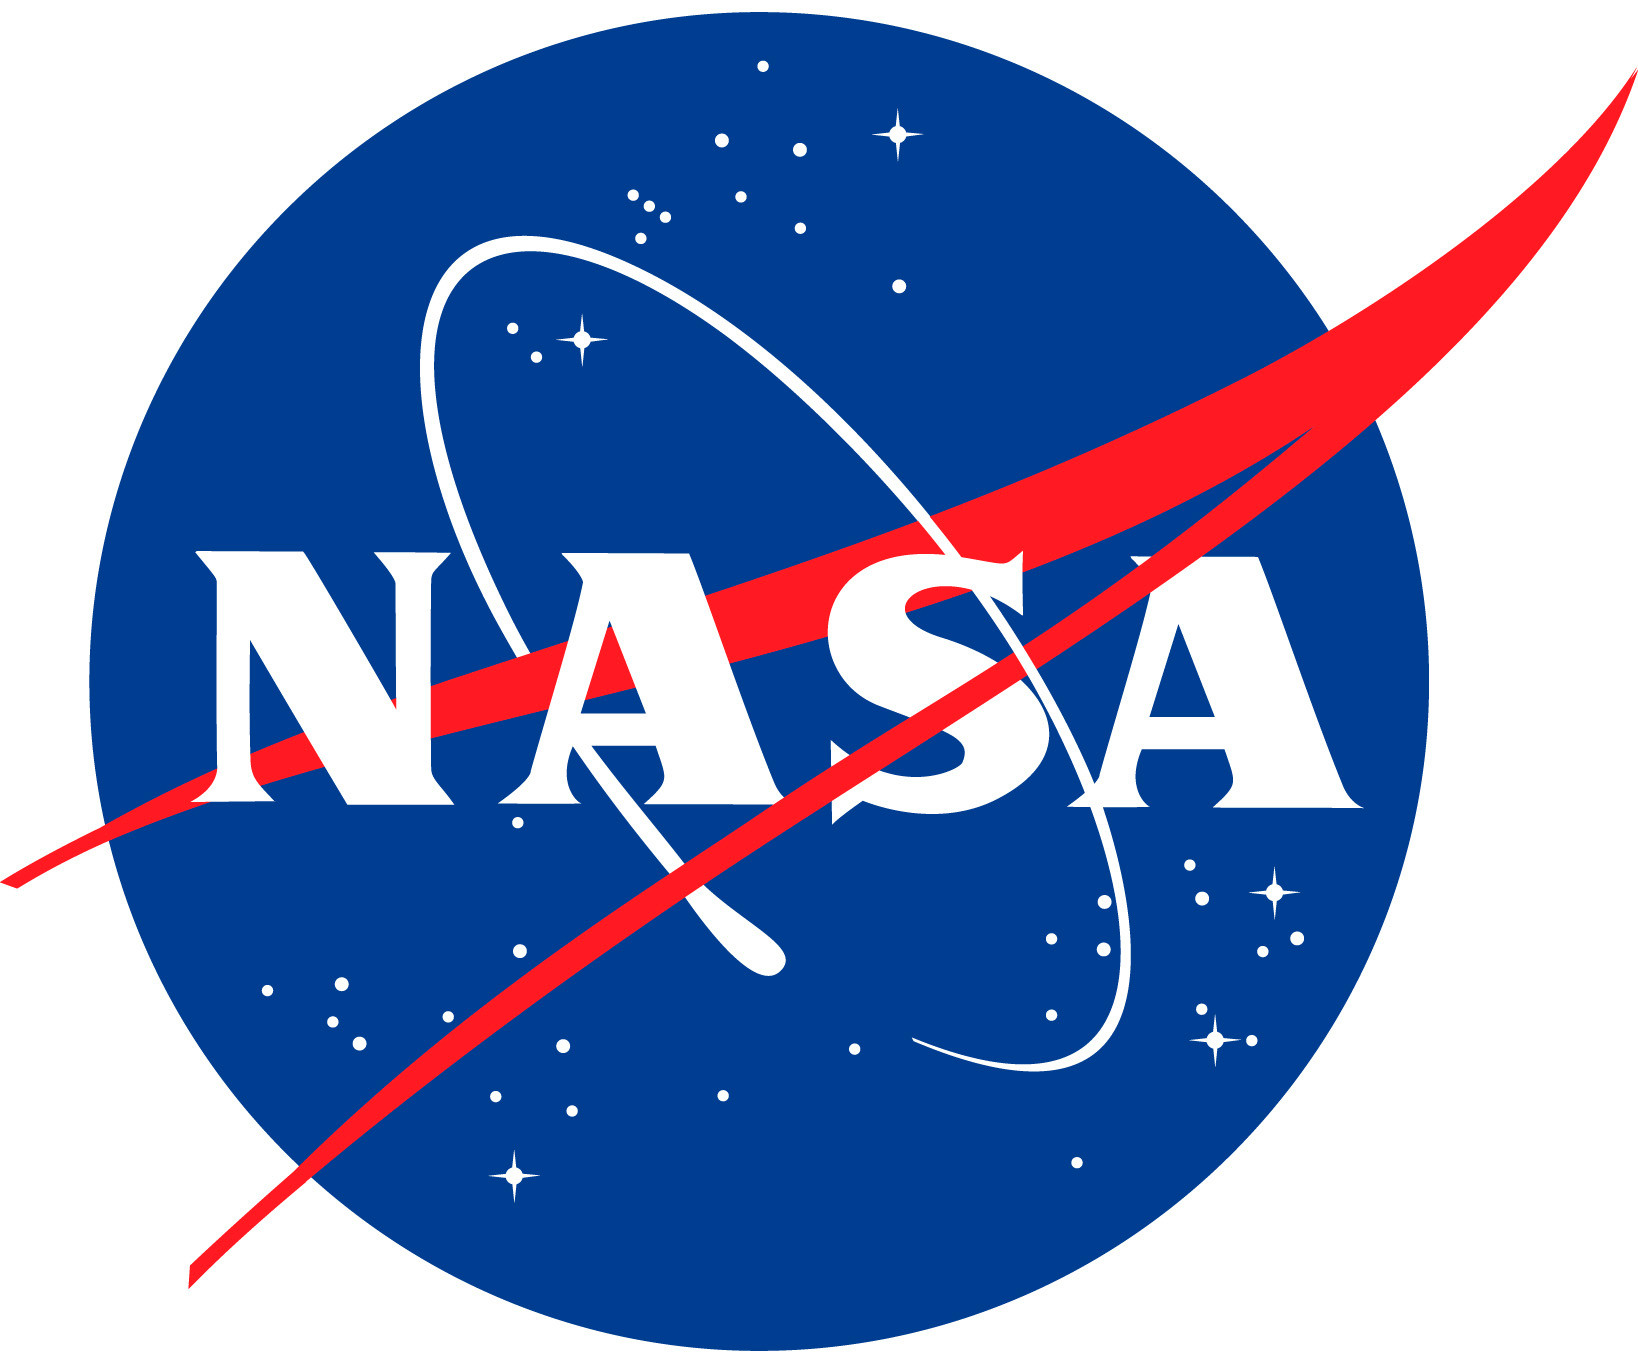 https://i0.wp.com/pmm.nasa.gov/sites/default/files/NASA-Logo-Large.jpg